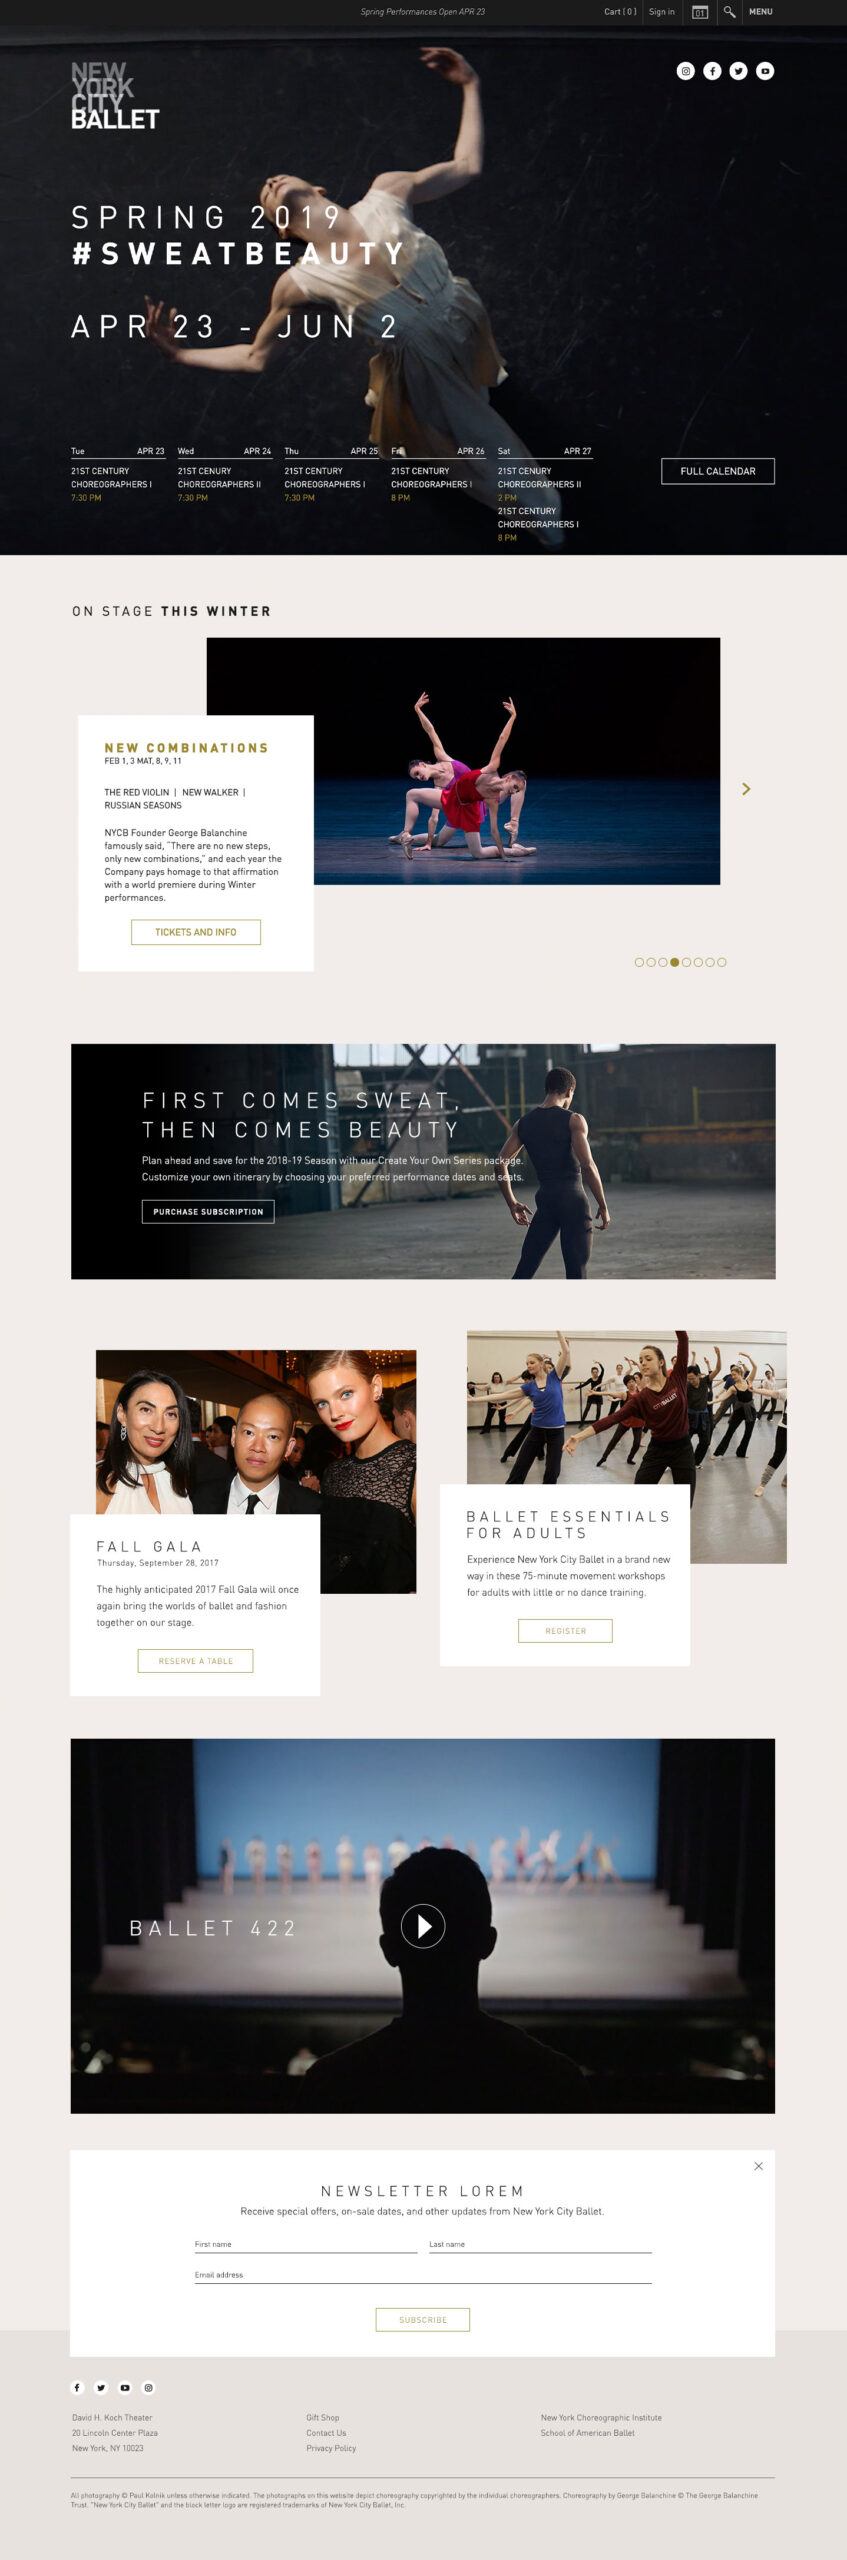 FY17-NYCB-home-website-rk-01